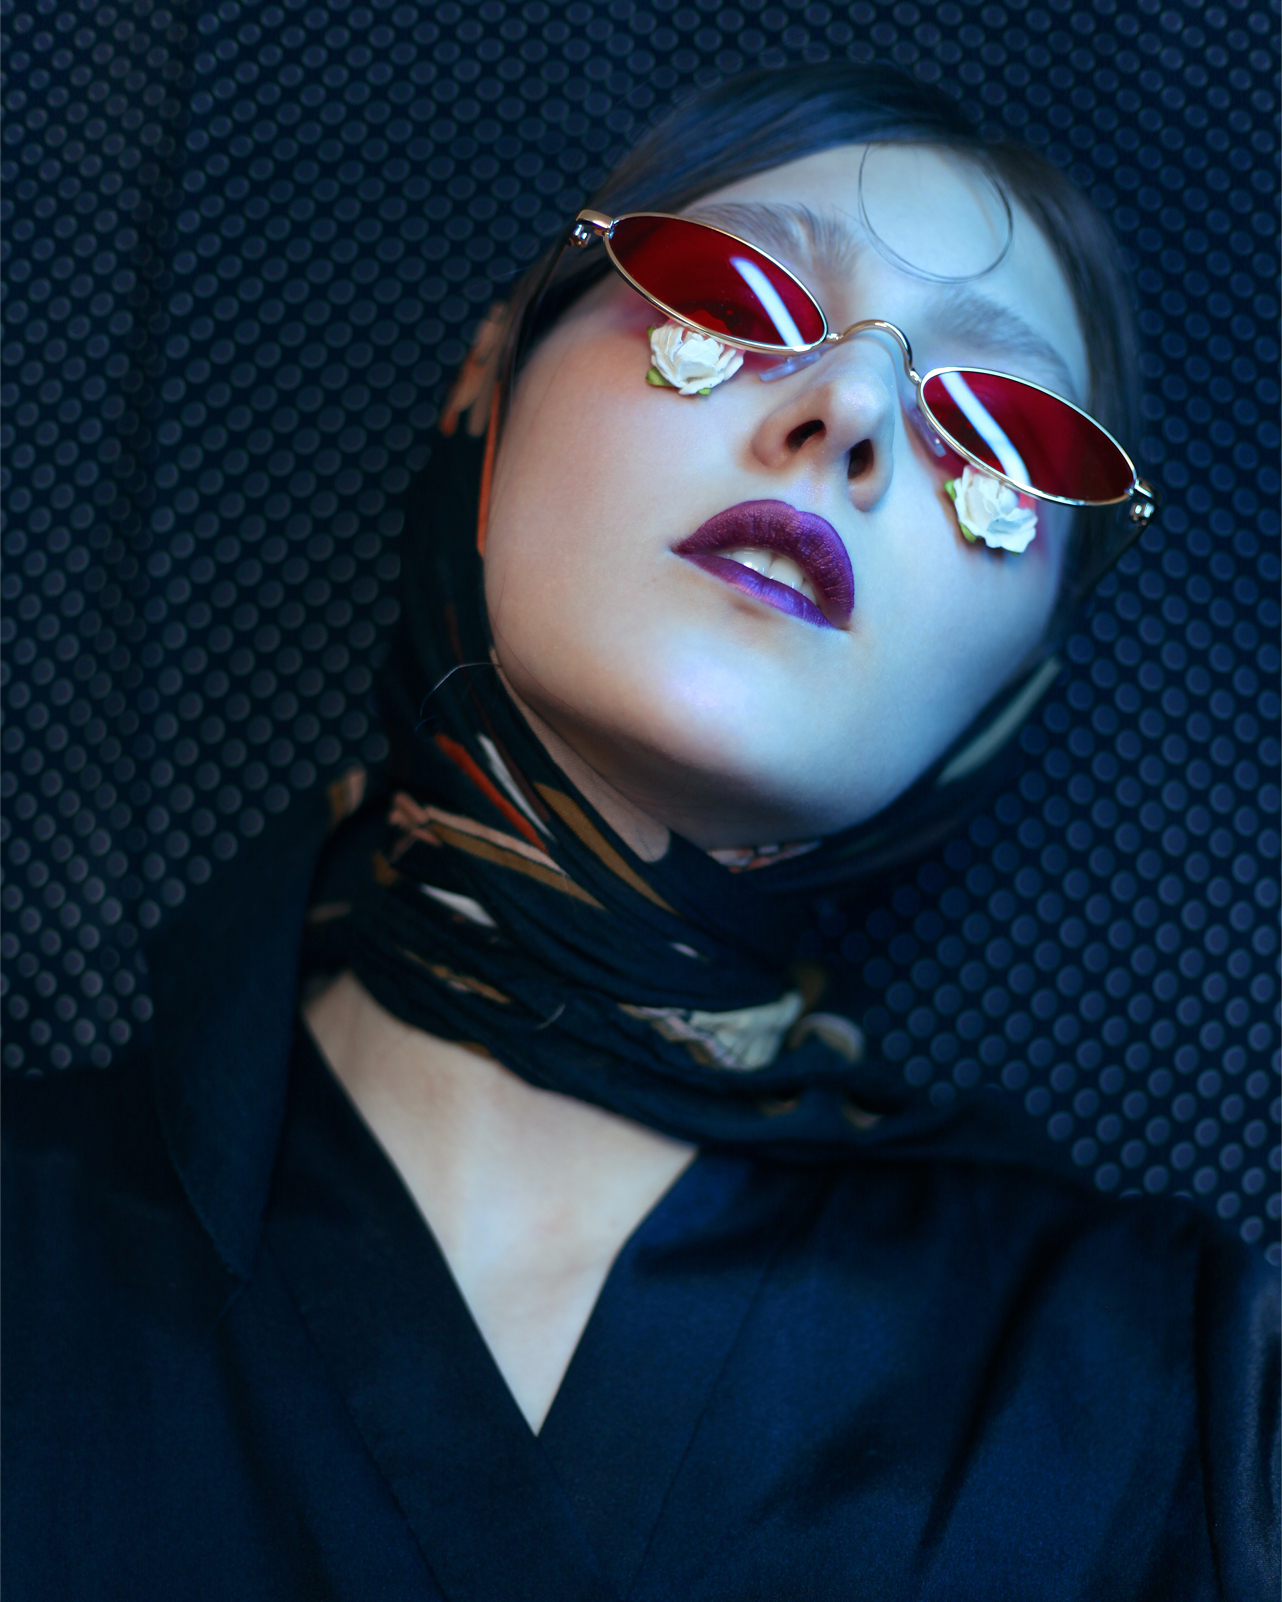 Women in dark with sun glass